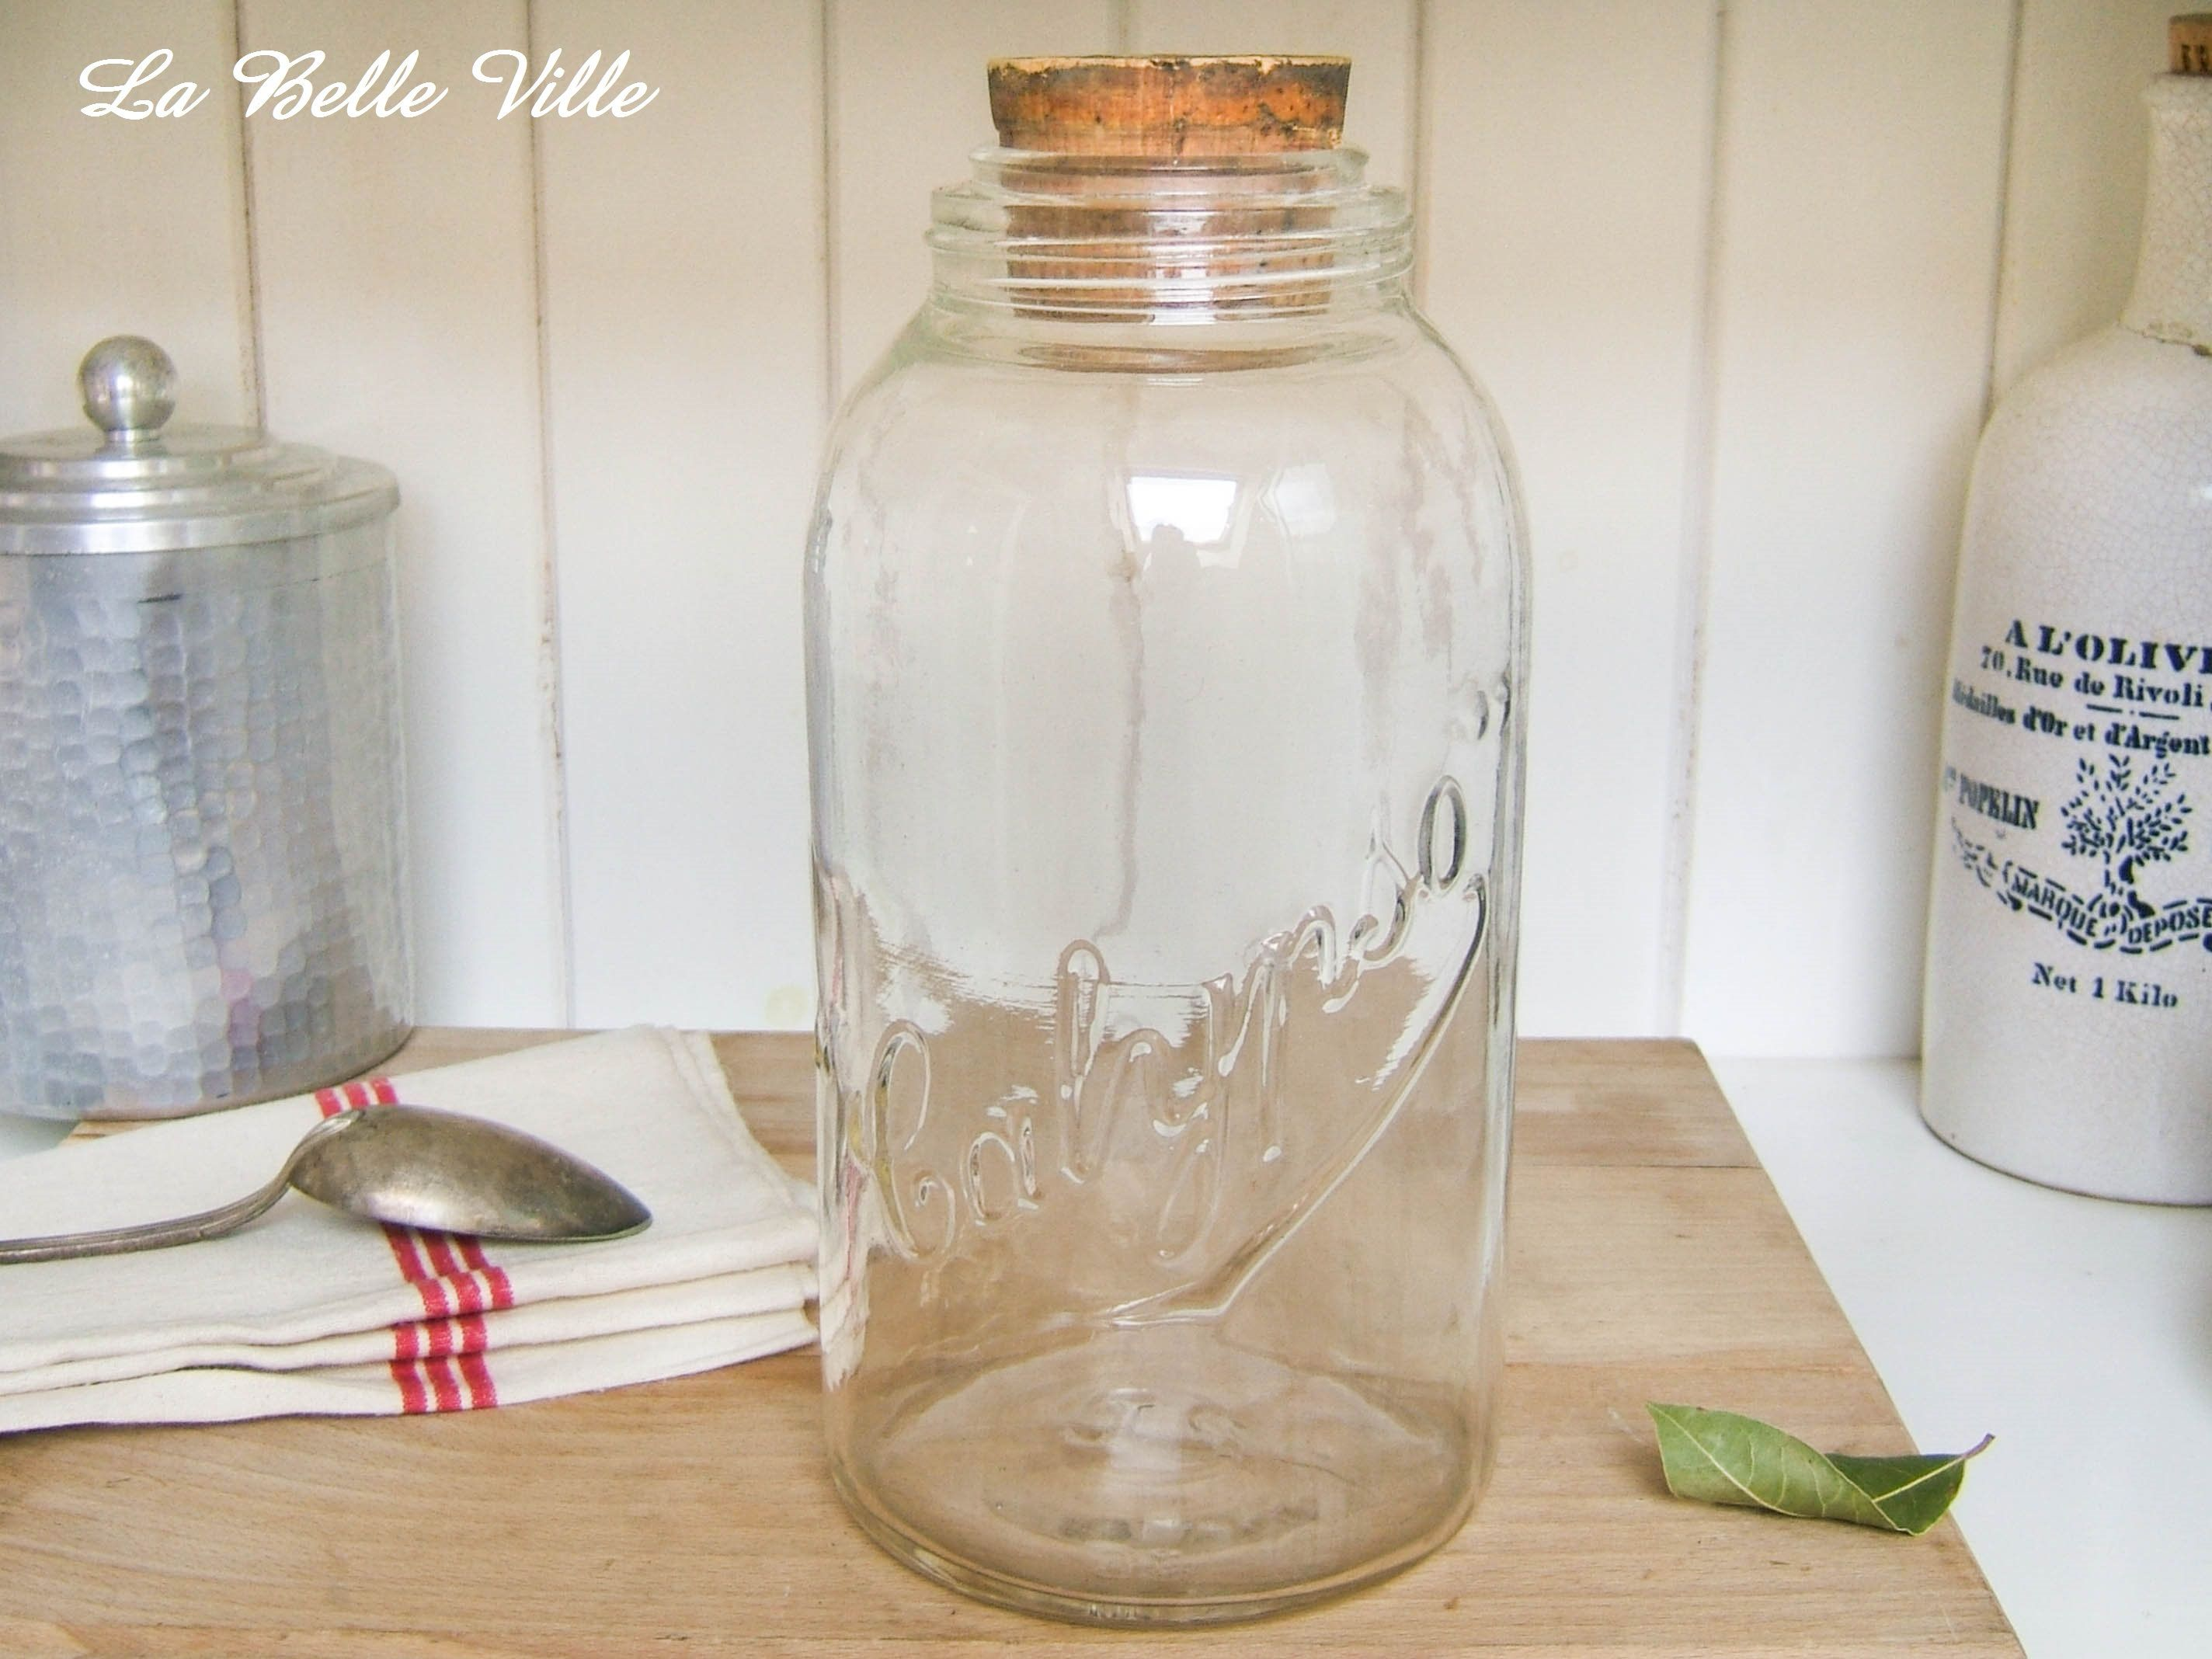 Vintage French Glass Jar Large Bottle For The Kitchen Storage Preserving Jar With Cork Calypso Clear Glass Jar Kitchen Decor